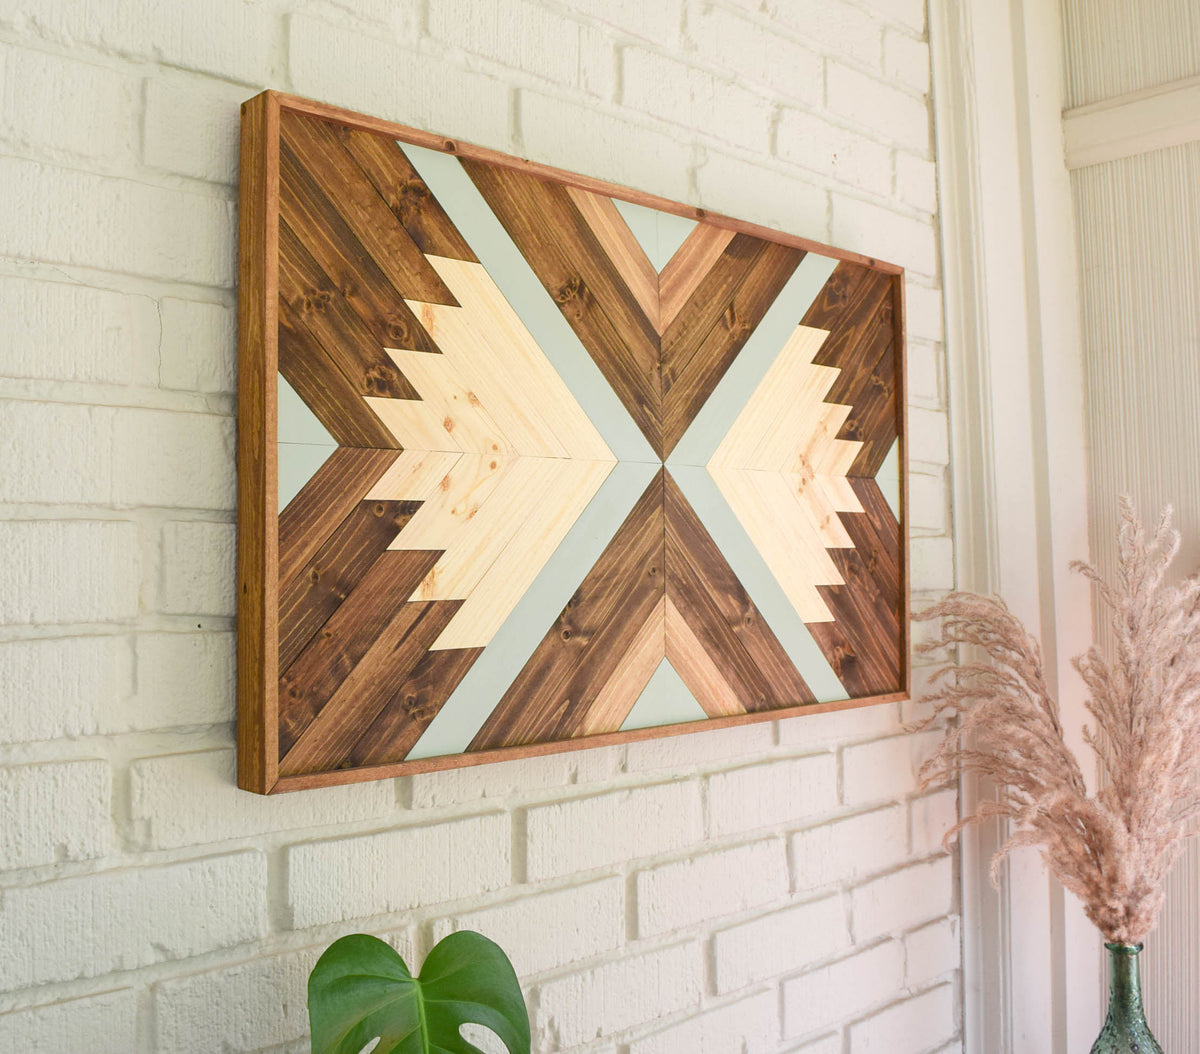 INDRA Wood Wall Art - Wooden Wall Art - Geometric Wood Art - Wooden Wall Art Hanging - Modern Wood Art - Boho Wood Art - Wood Wall Decor